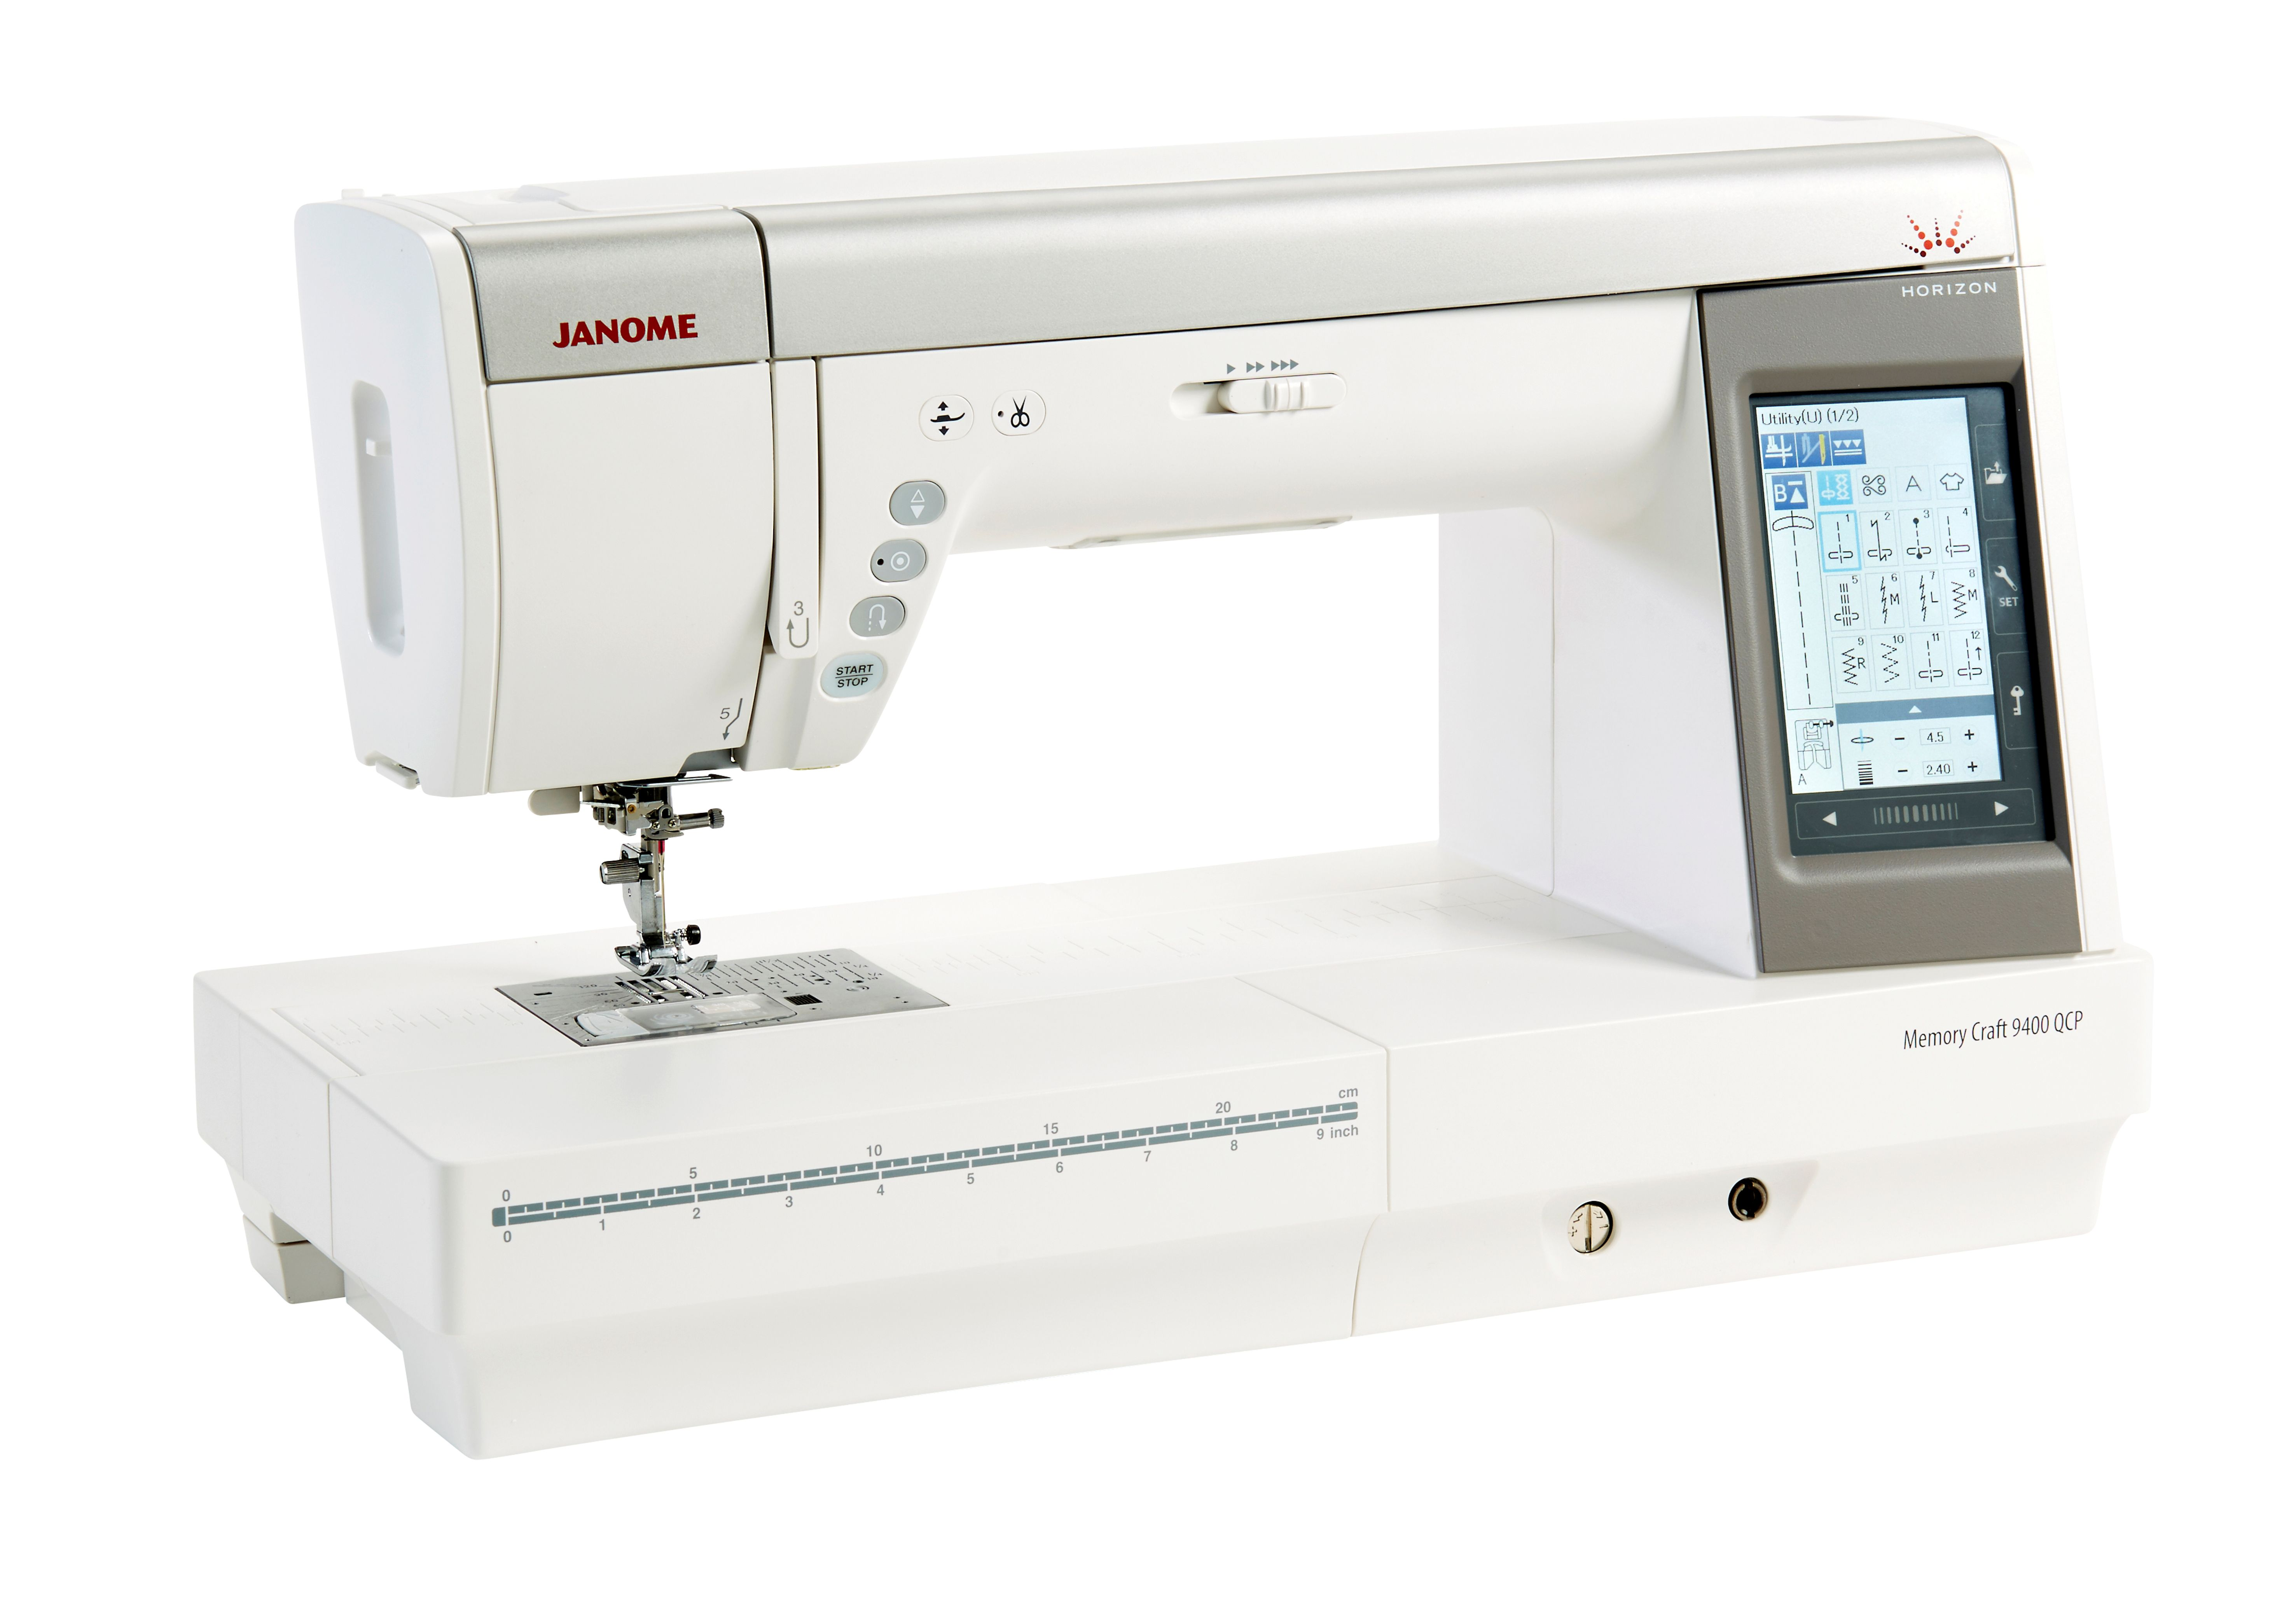 Janome MC9400 6 - Franklins Group